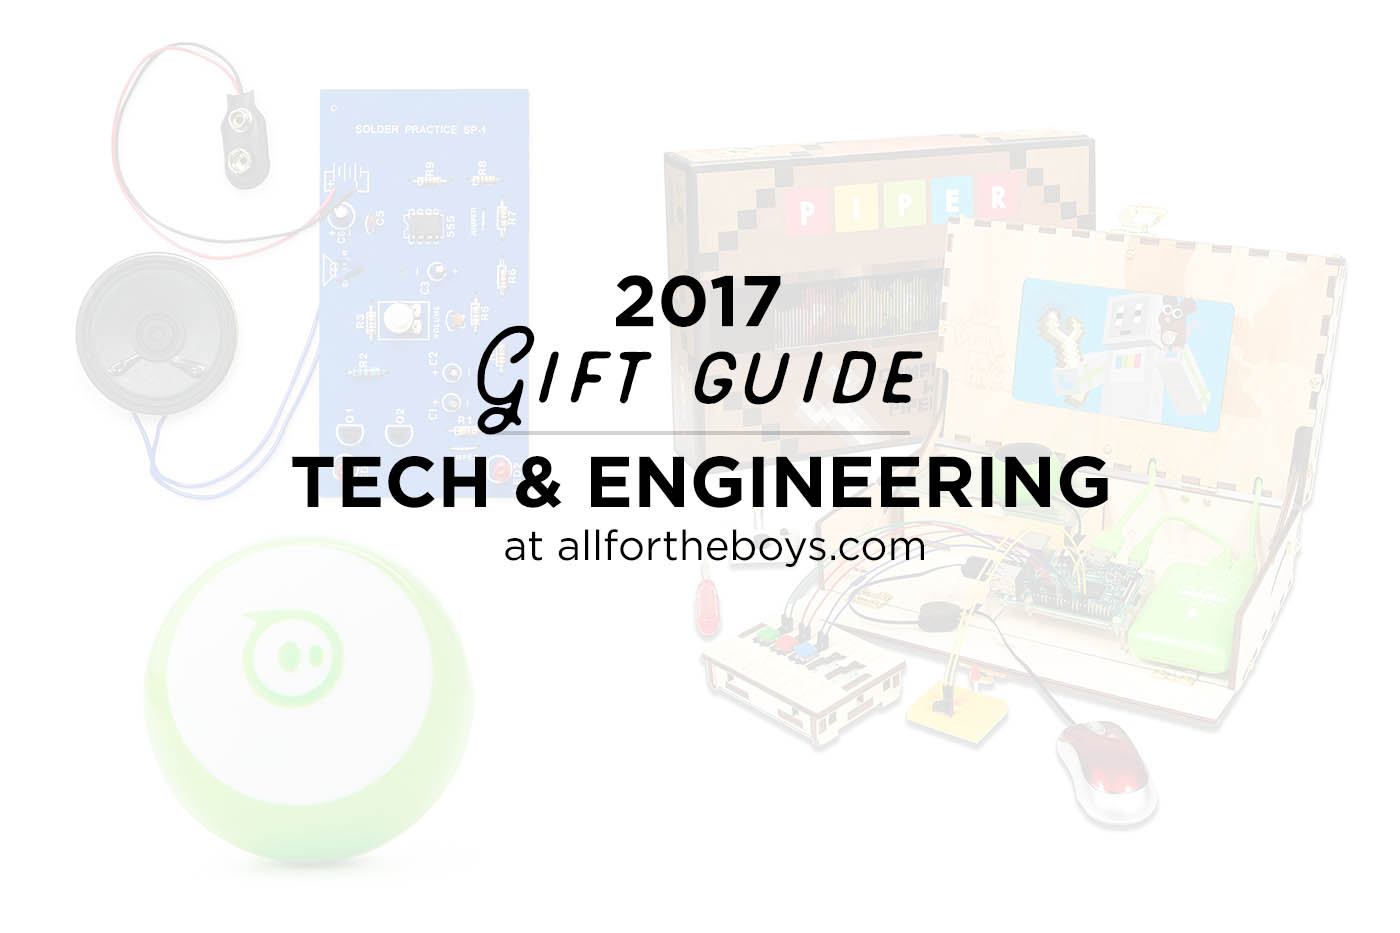 2017 last minute gift guide for kids who love tech, engineering, coding or building!